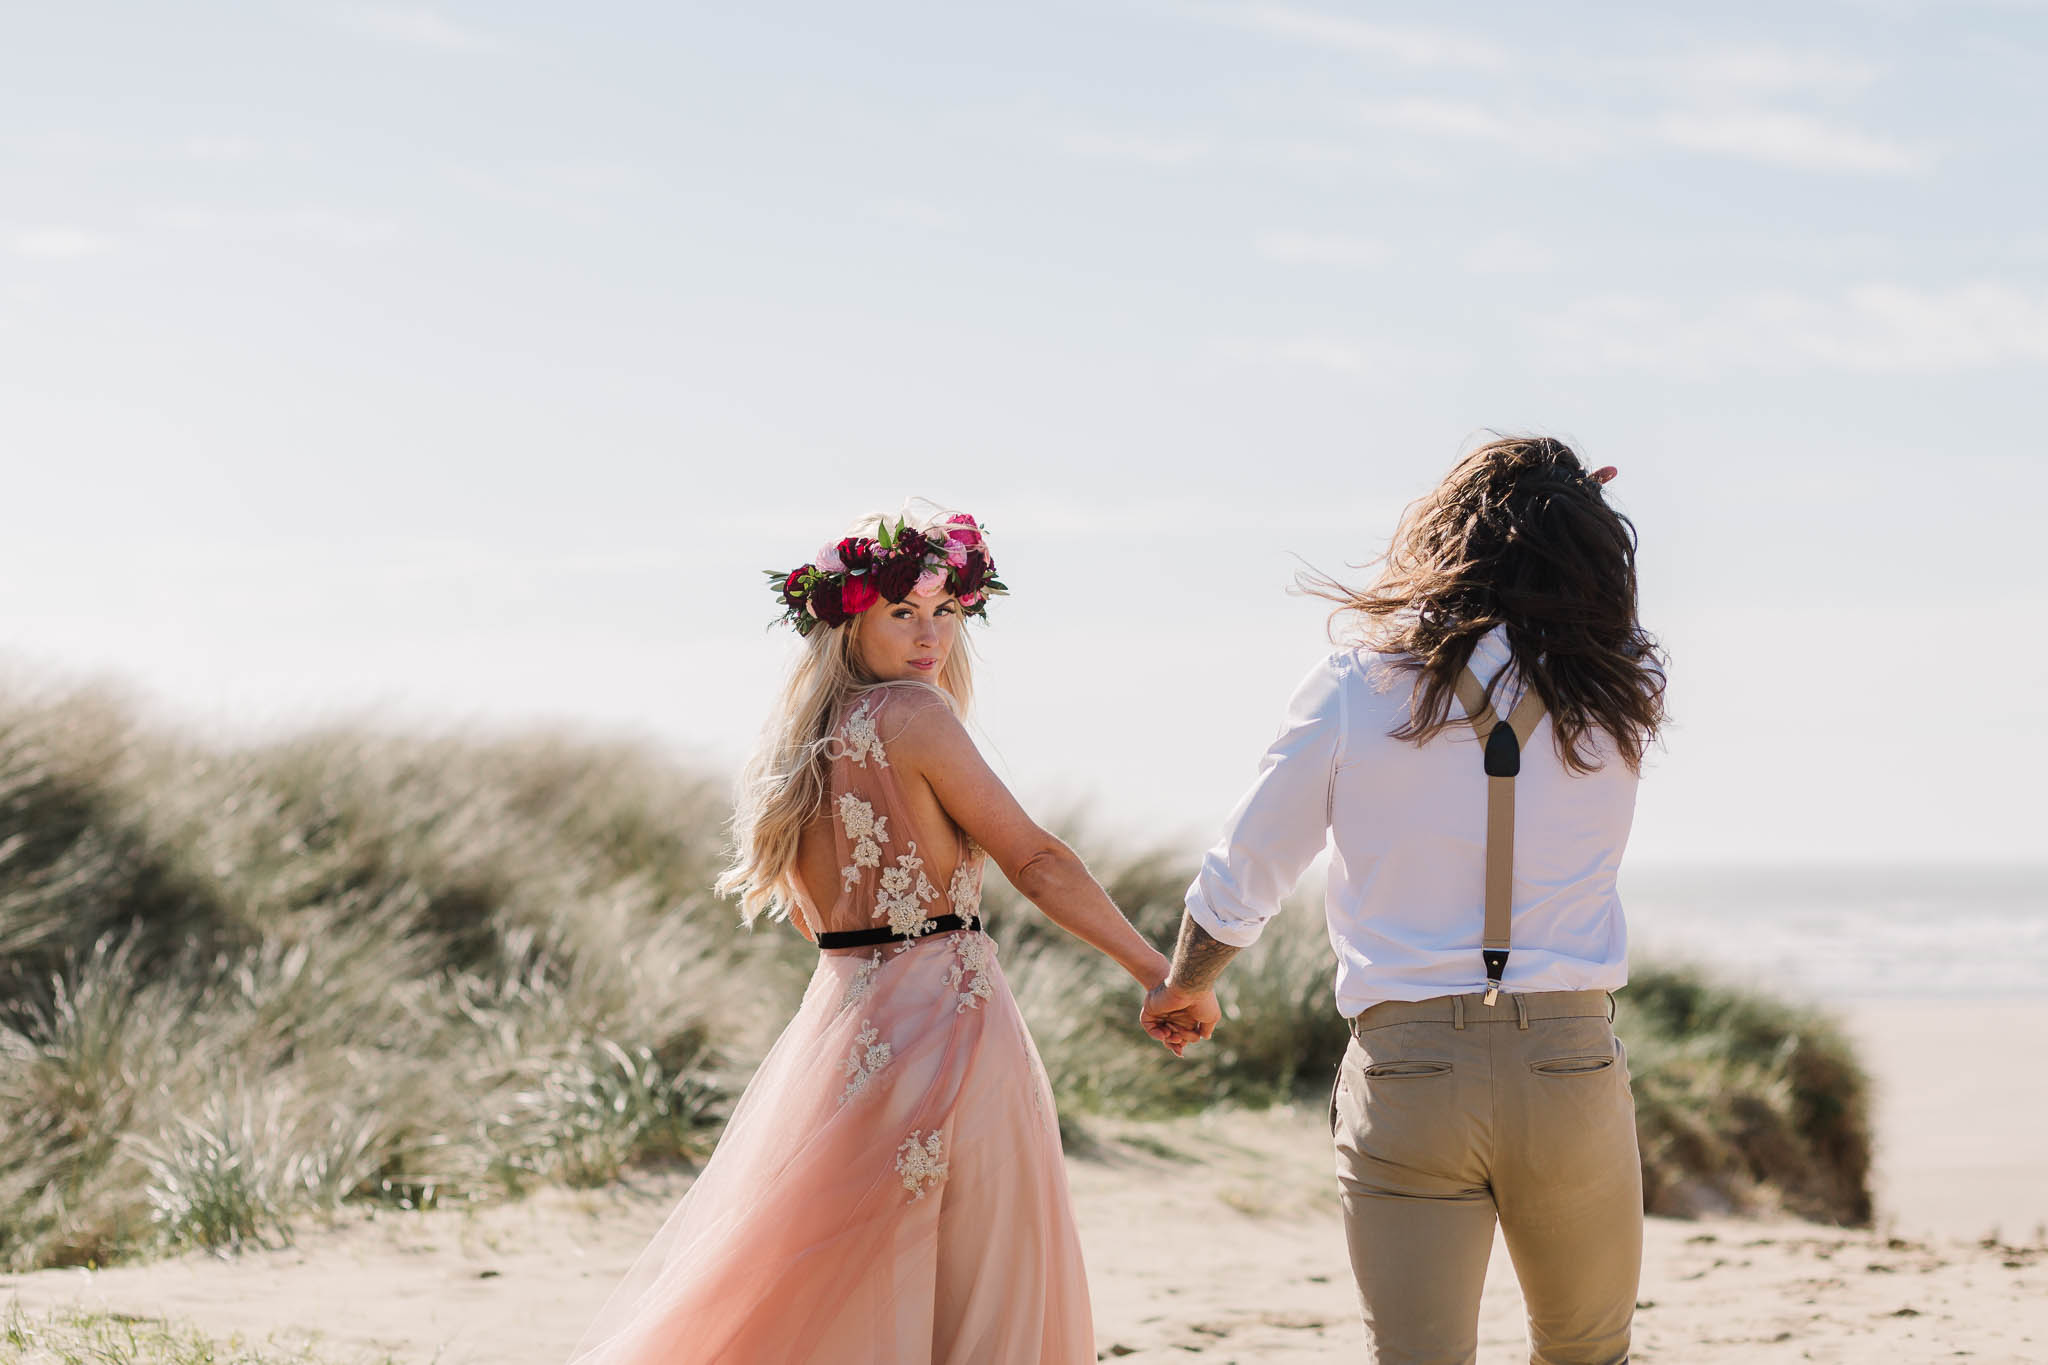 bride looking at camera with pink wedding dress